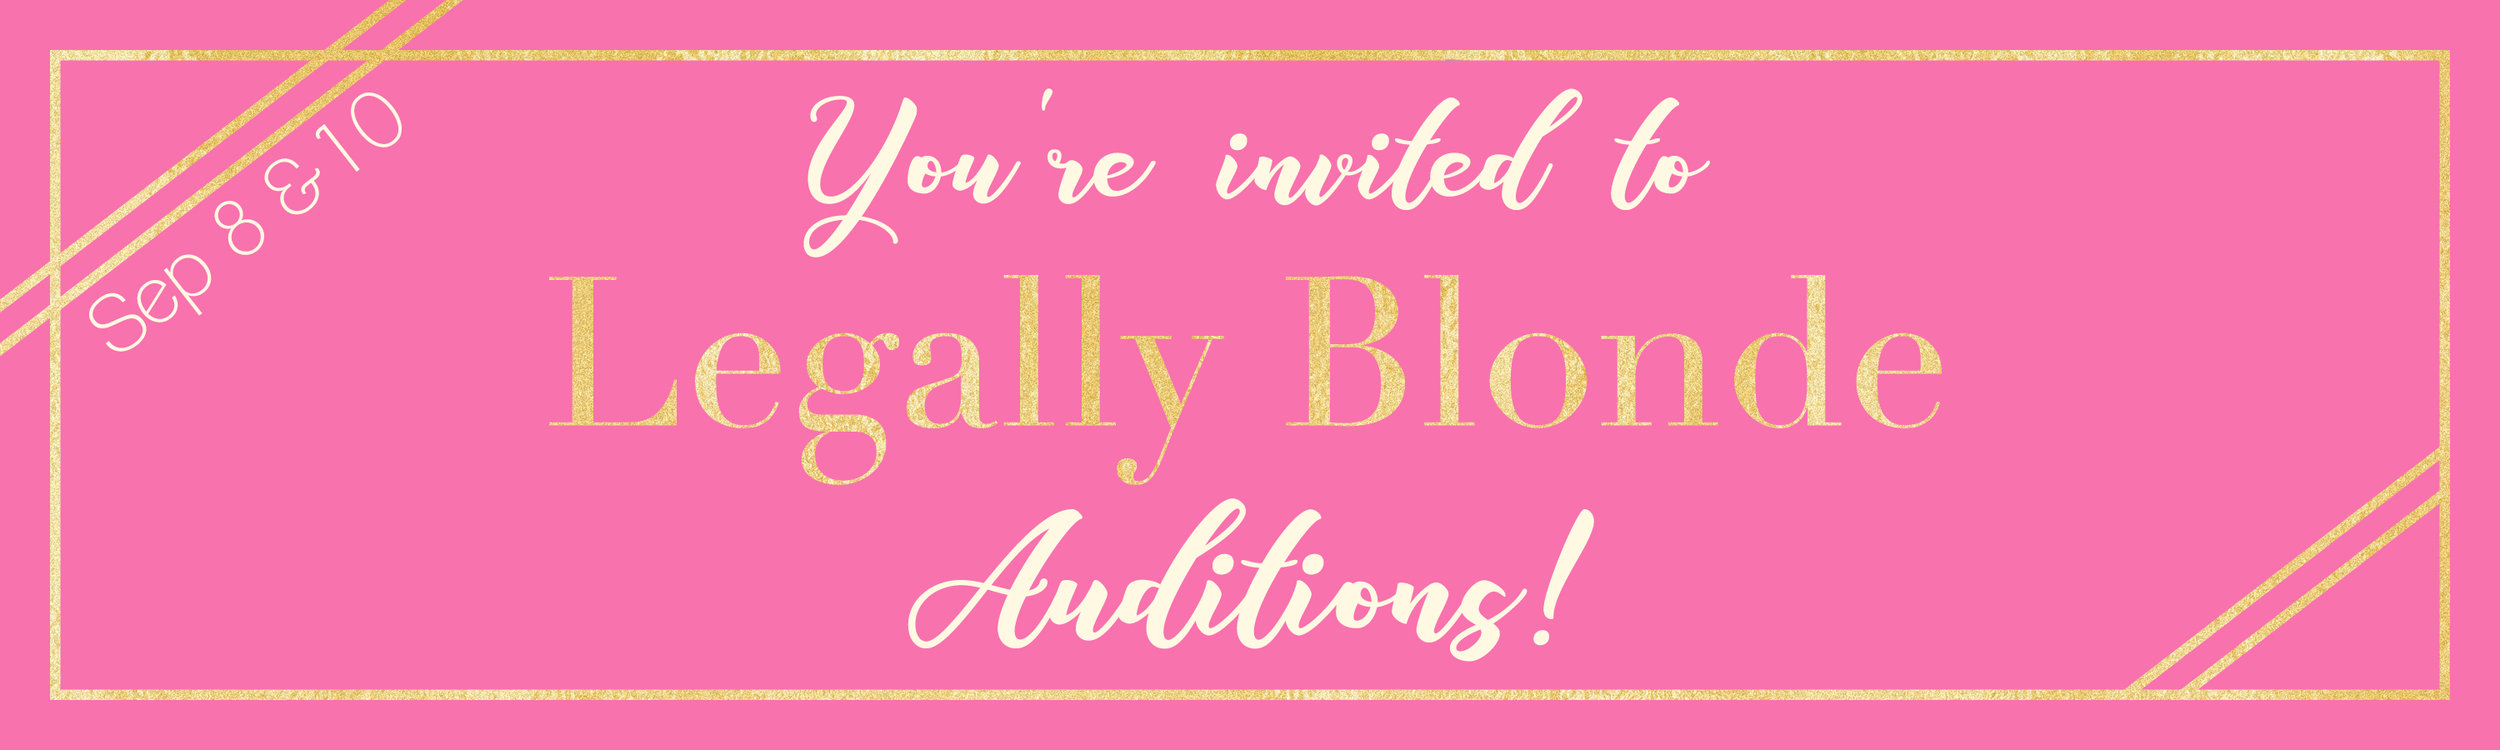 Legally Blonde Auditions Banner.jpg